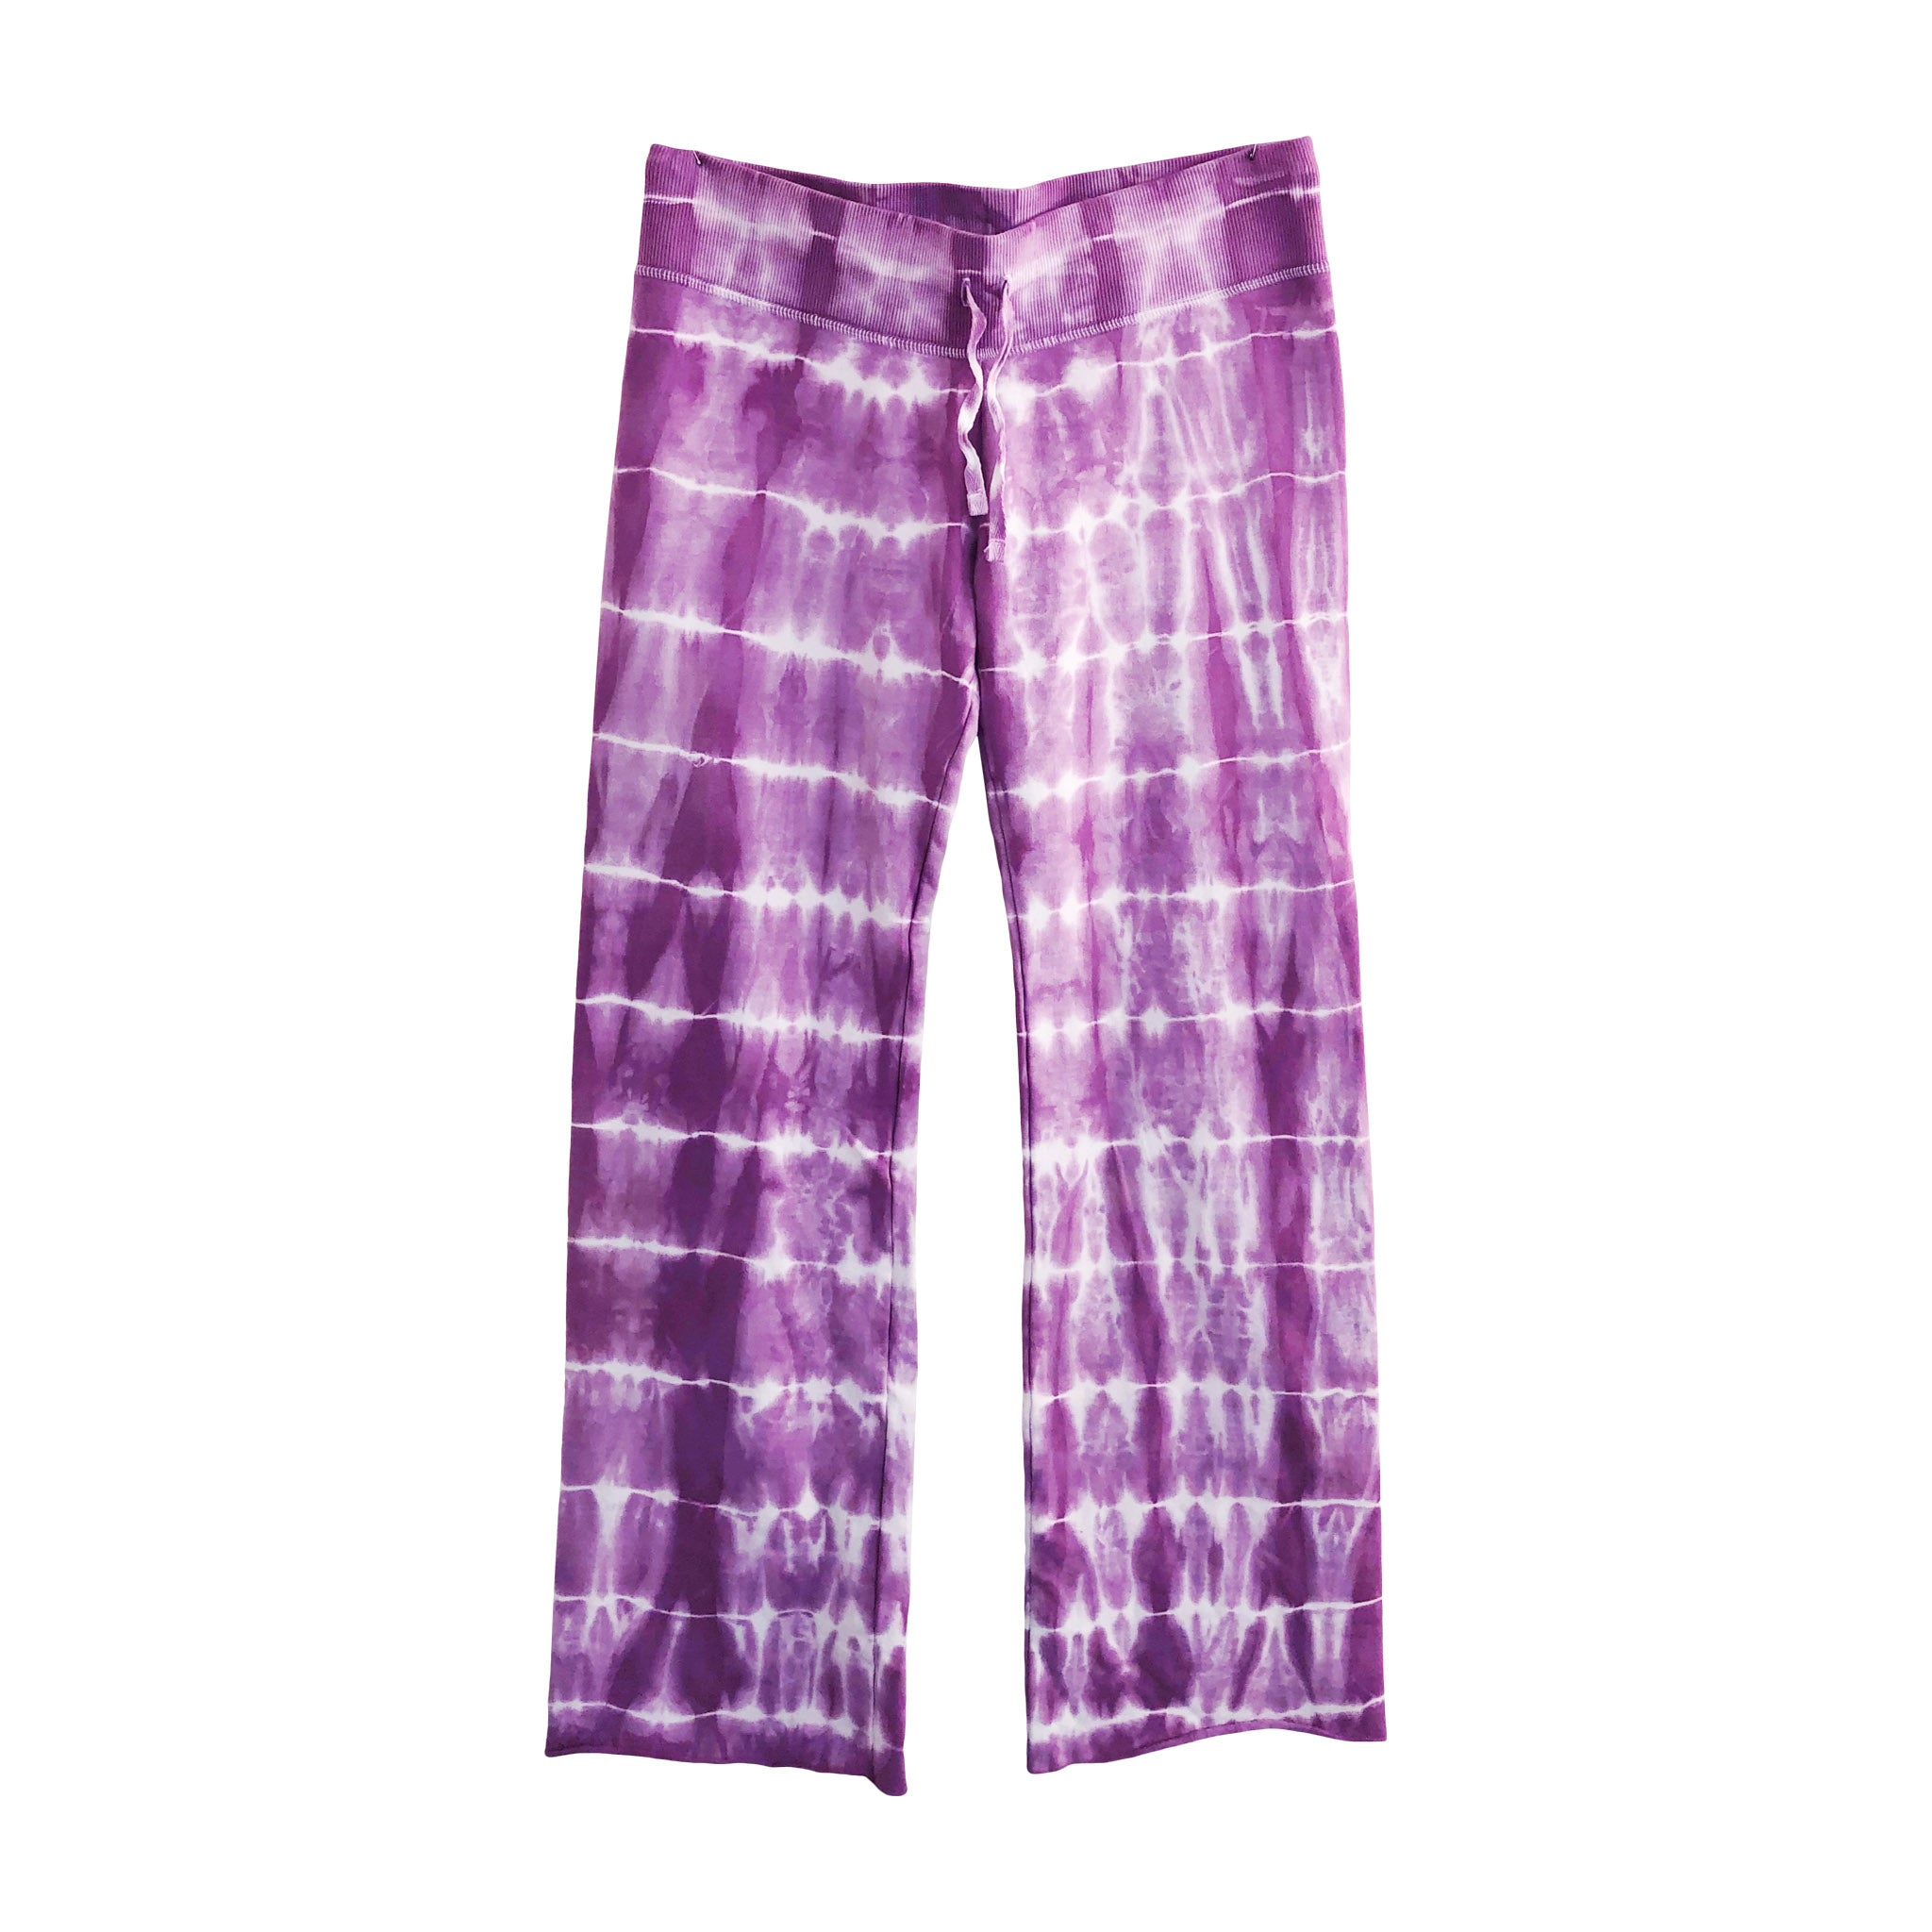 Women's Petite Blue Tie Dye Sweat Pant